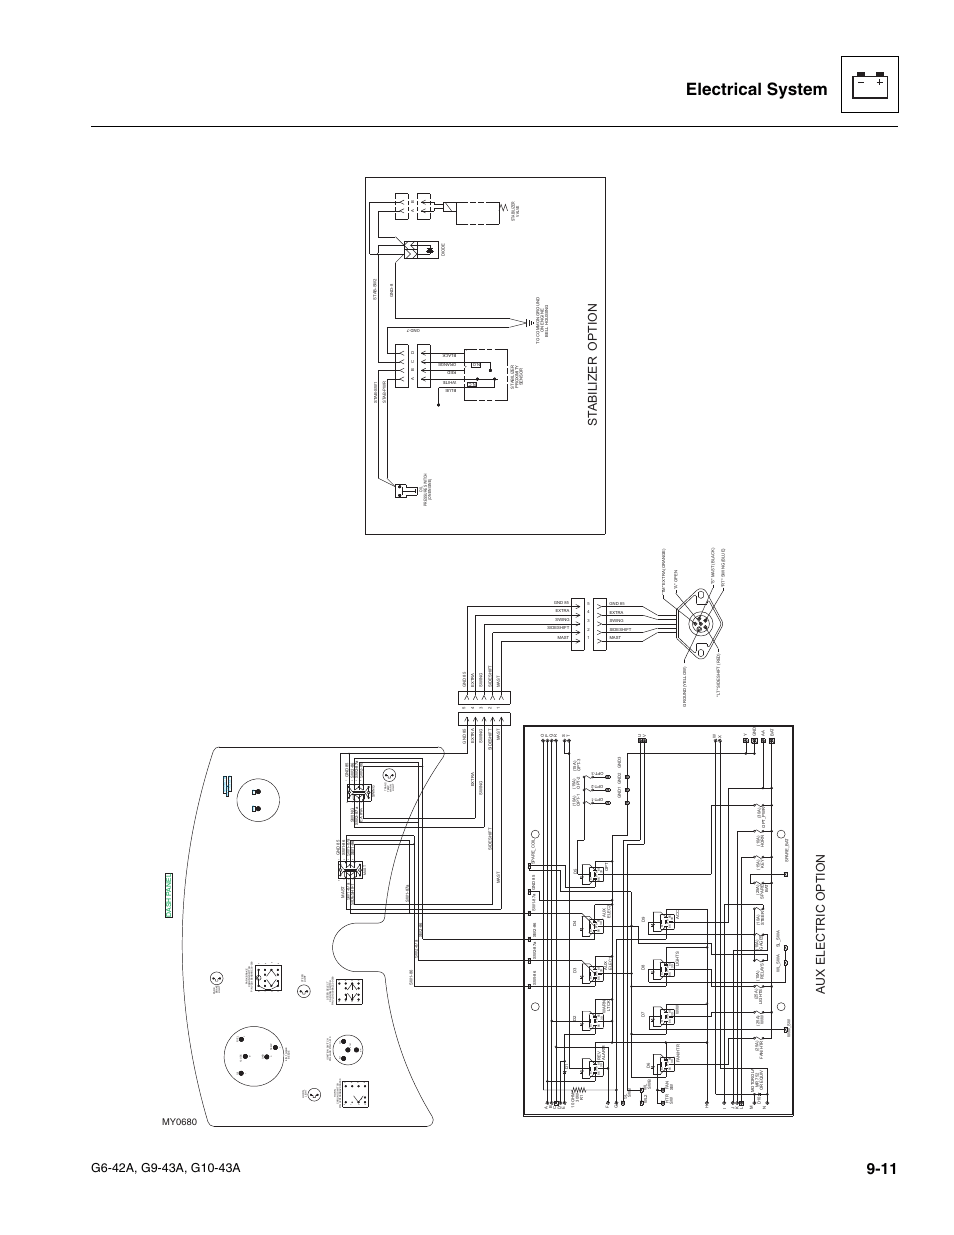 Electrical system, St abilizer option, Aux electric option